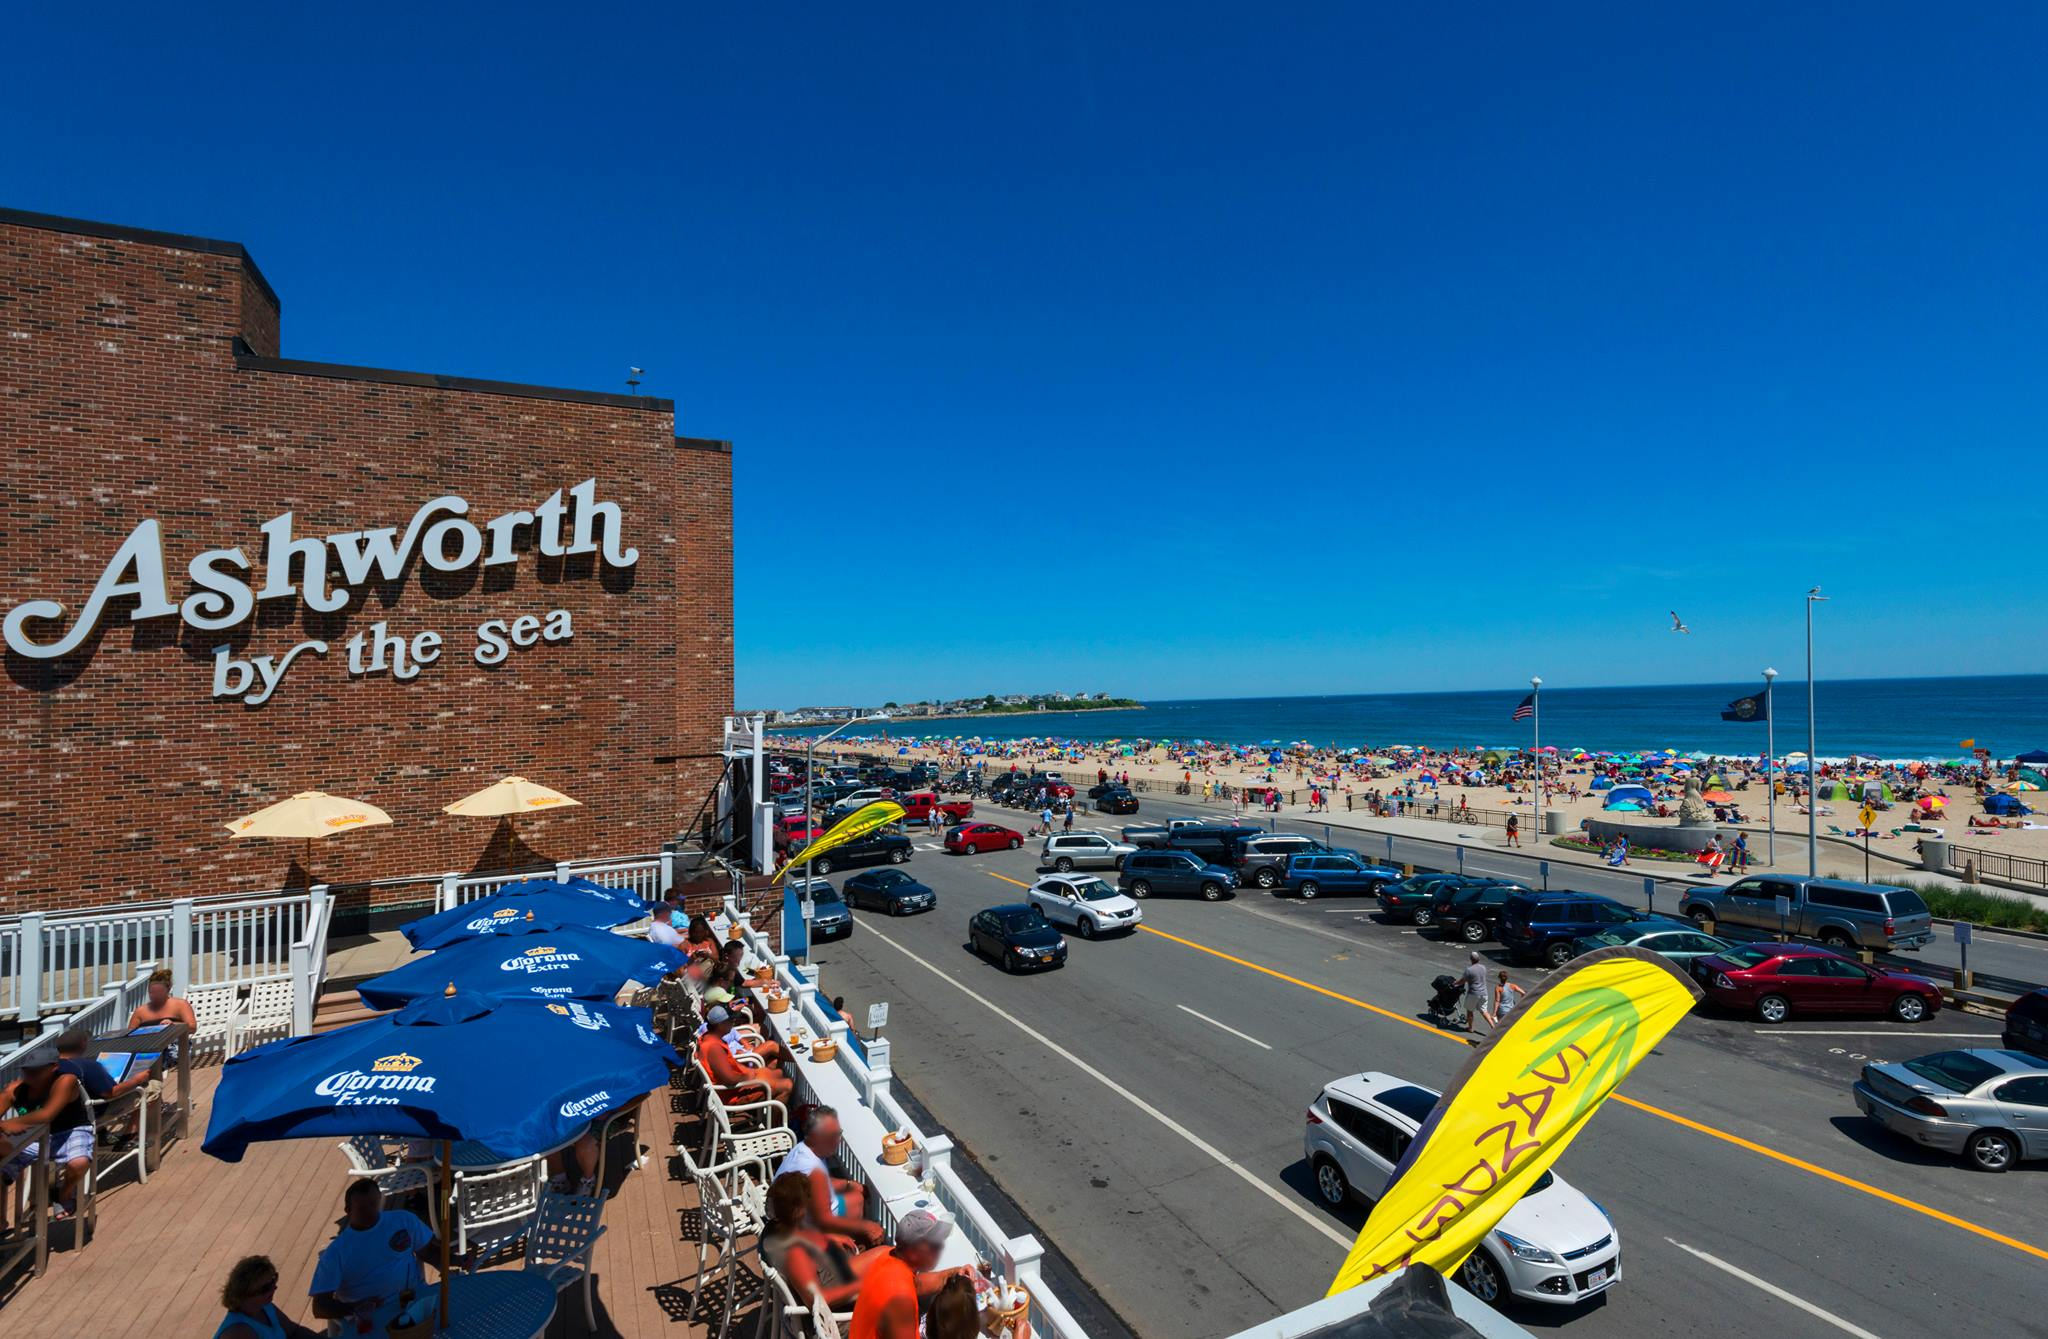 Go to Hampton Beach and Drink at These Bars